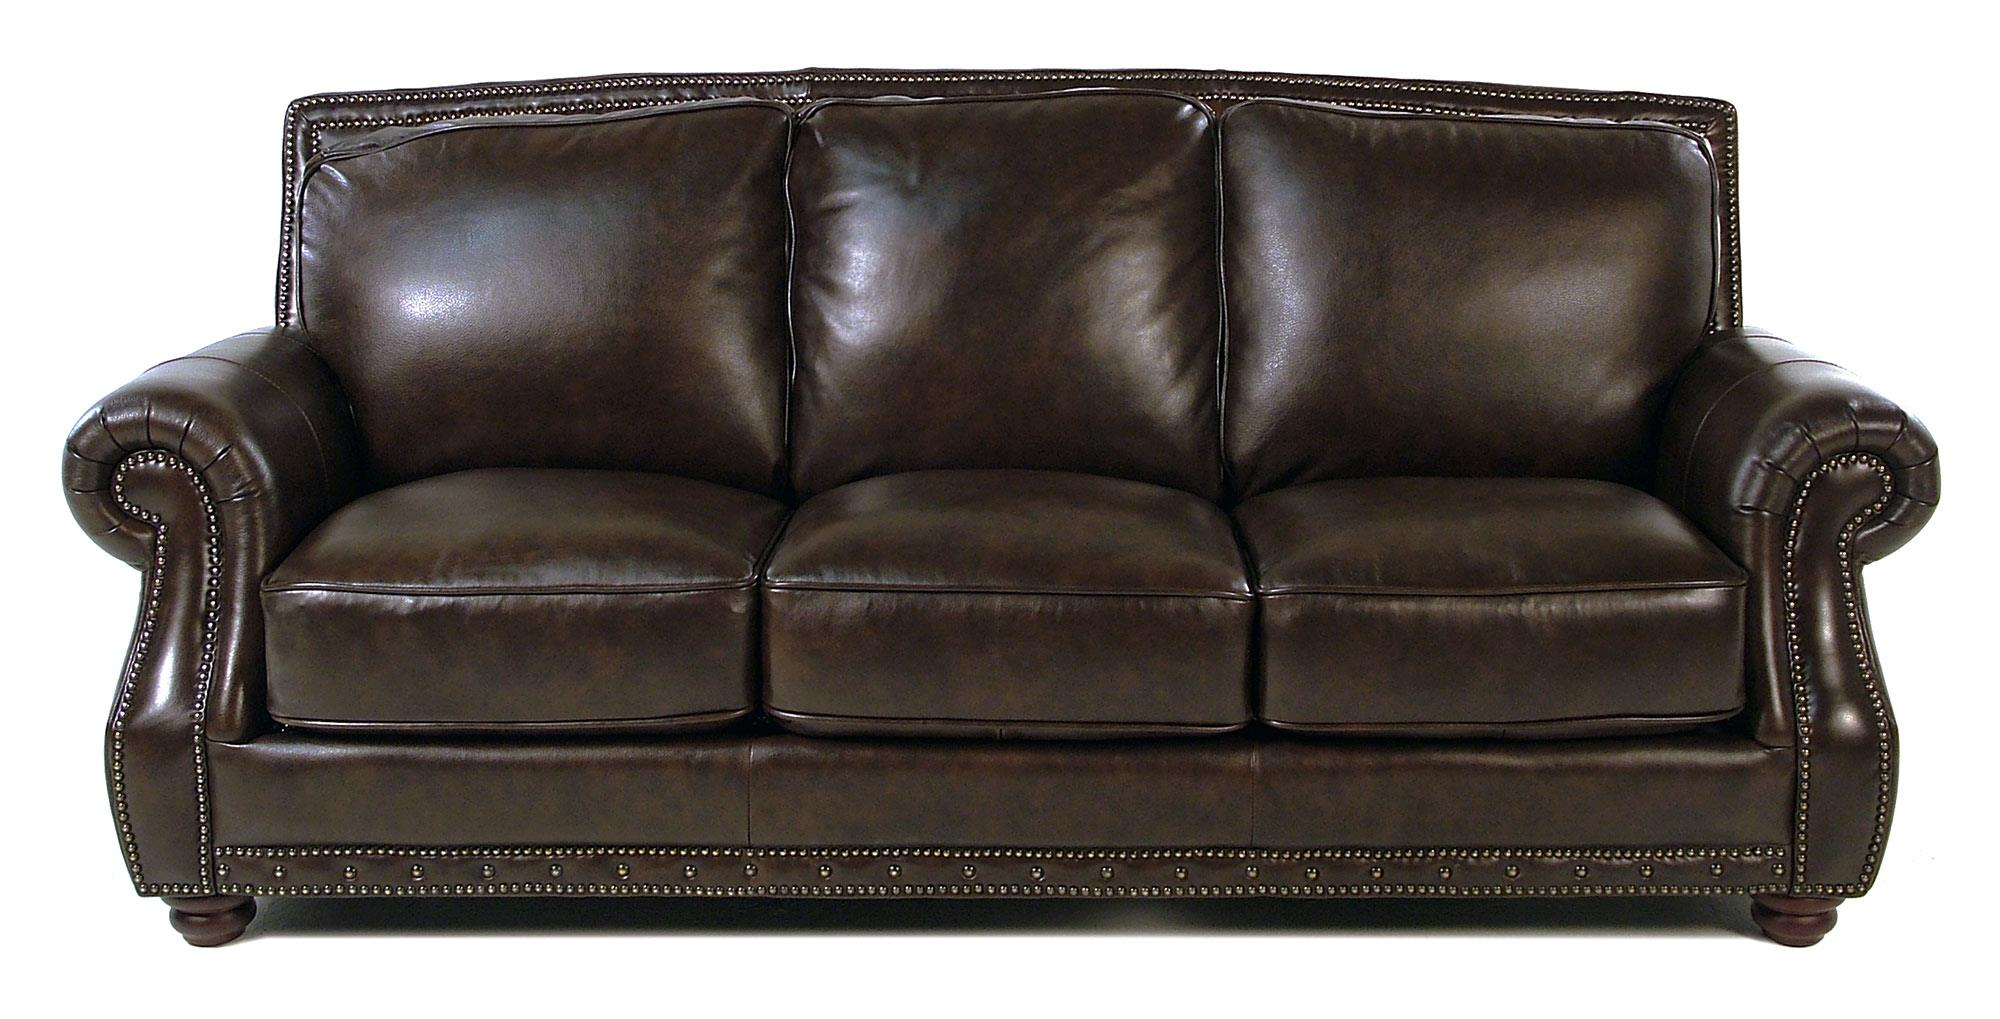 Loft Leather Vincenzo Traditional Leather Sofa with Rolled Arms and ...